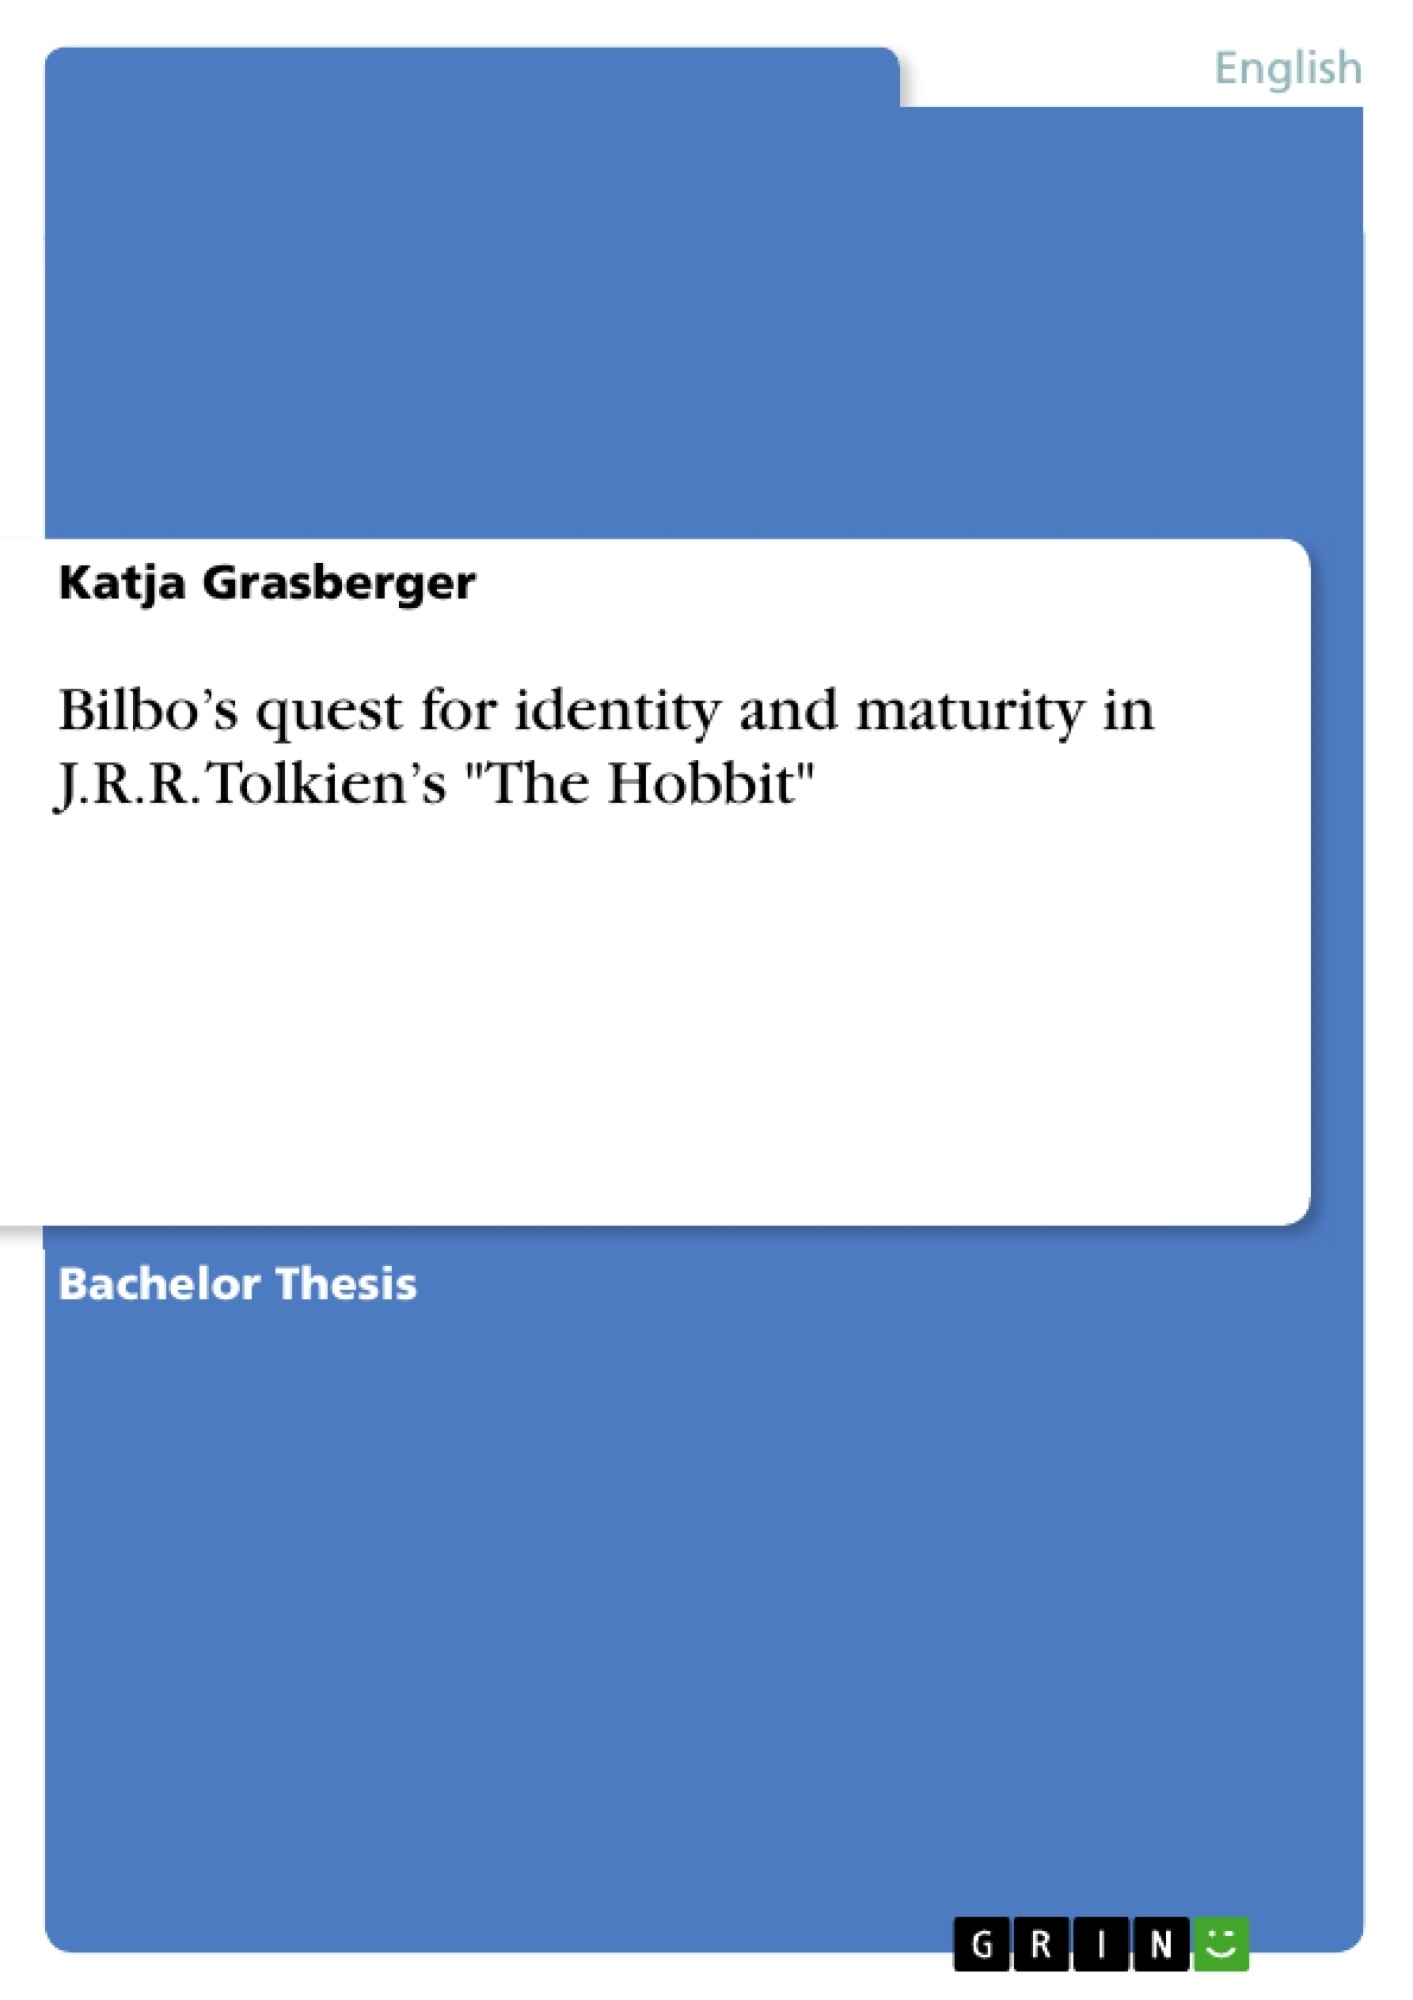 """Title: Bilbo's quest for identity and maturity in J.R.R. Tolkien's """"The Hobbit"""""""